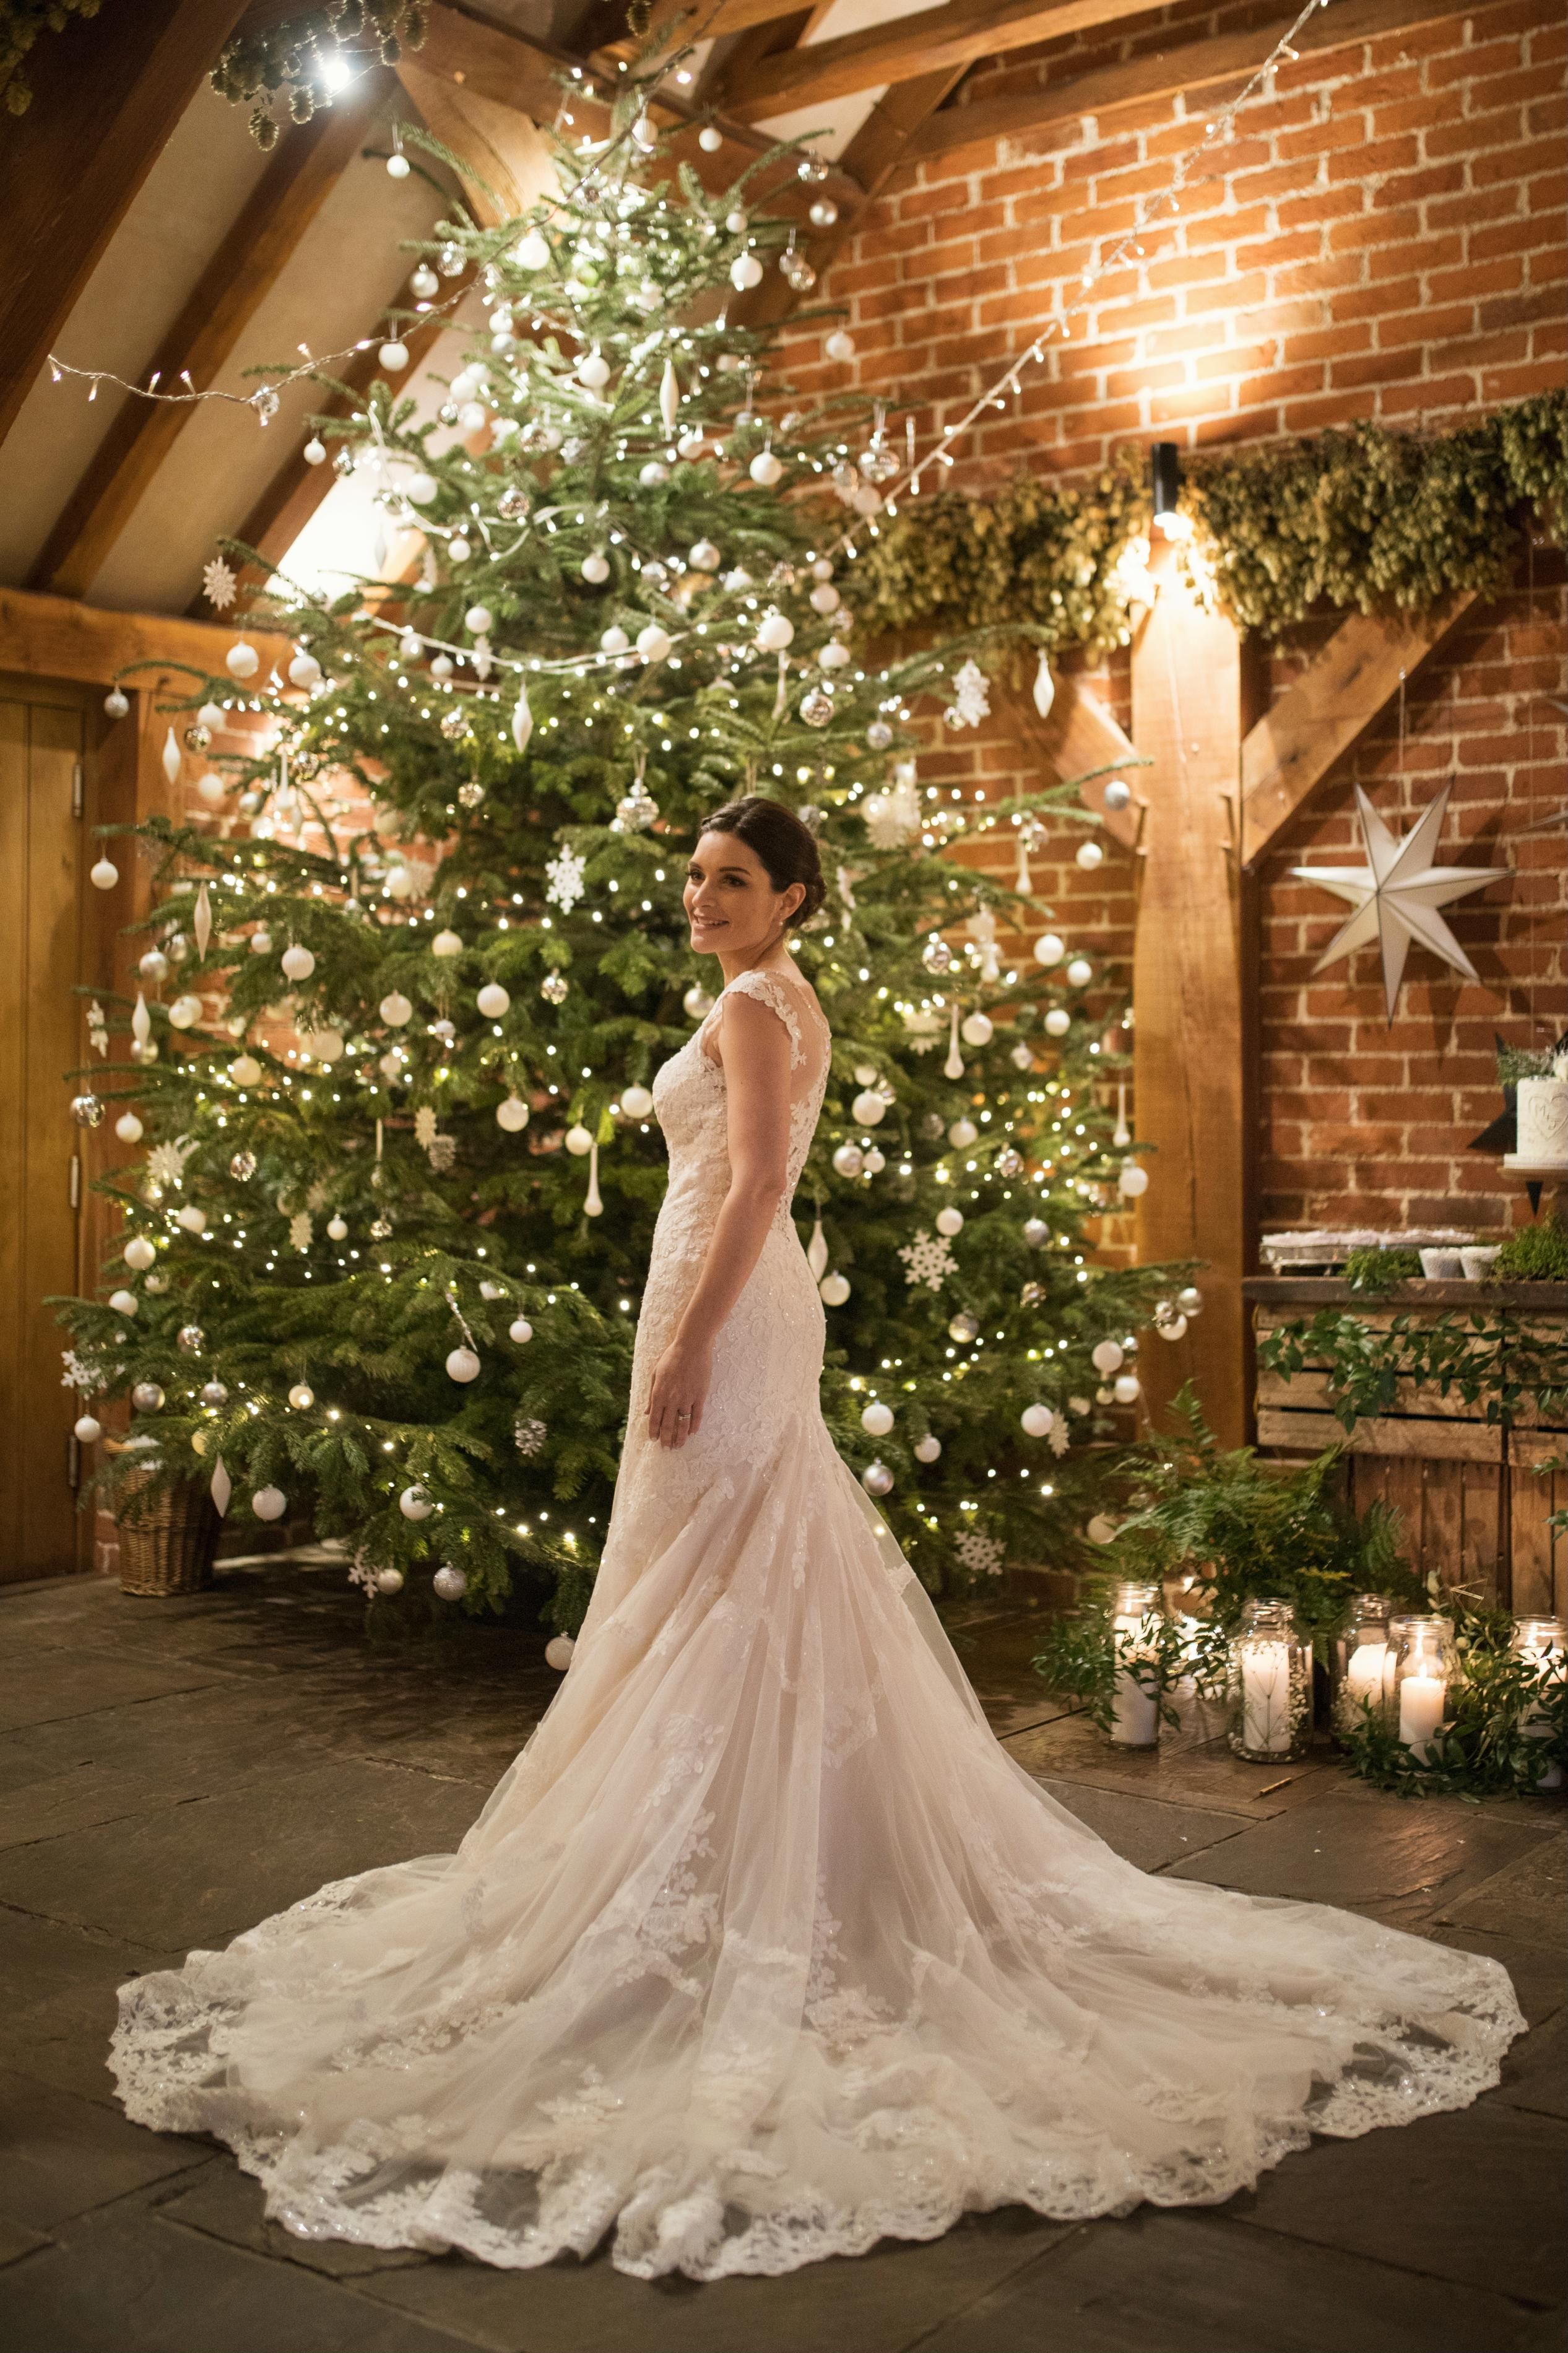 The dress, The Christmas tree, the light !! The most